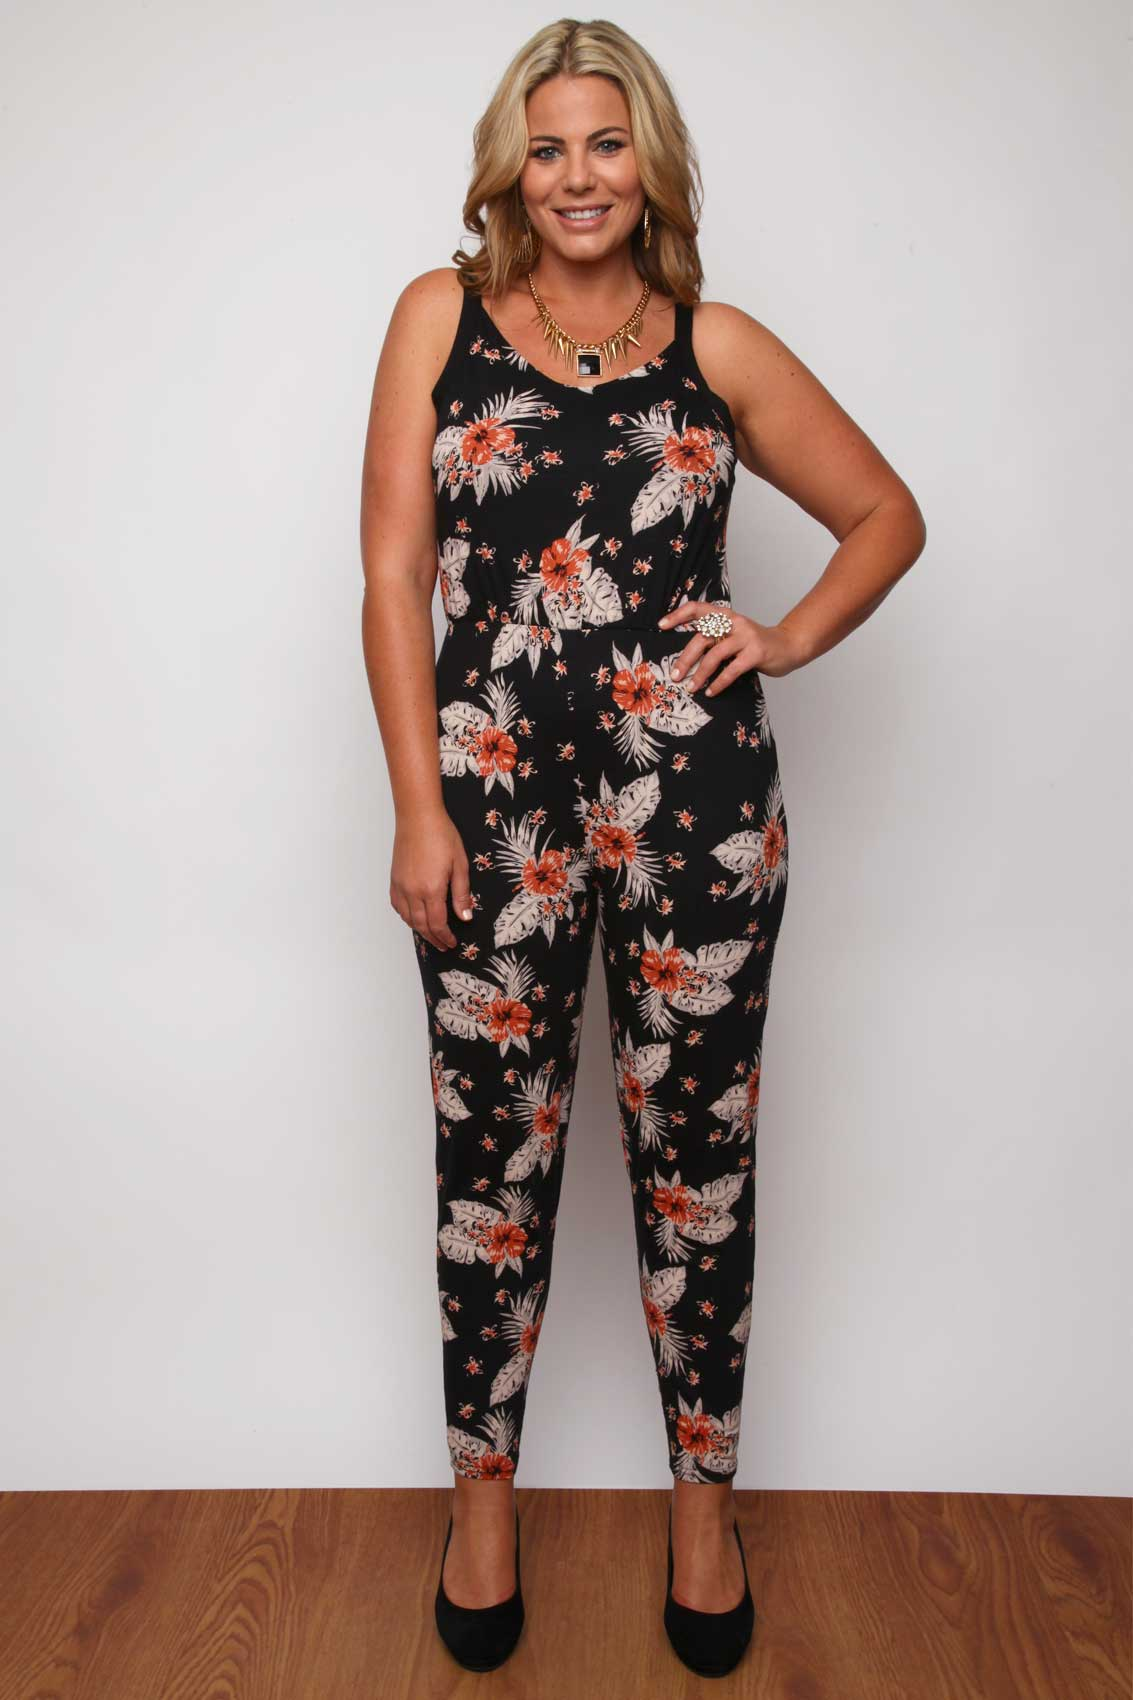 Shop Eliza J Women's Pants - Jumpsuits & Rompers at up to 70% off! Get the lowest price on your favorite brands at Poshmark. Poshmark makes shopping fun, affordable & easy!